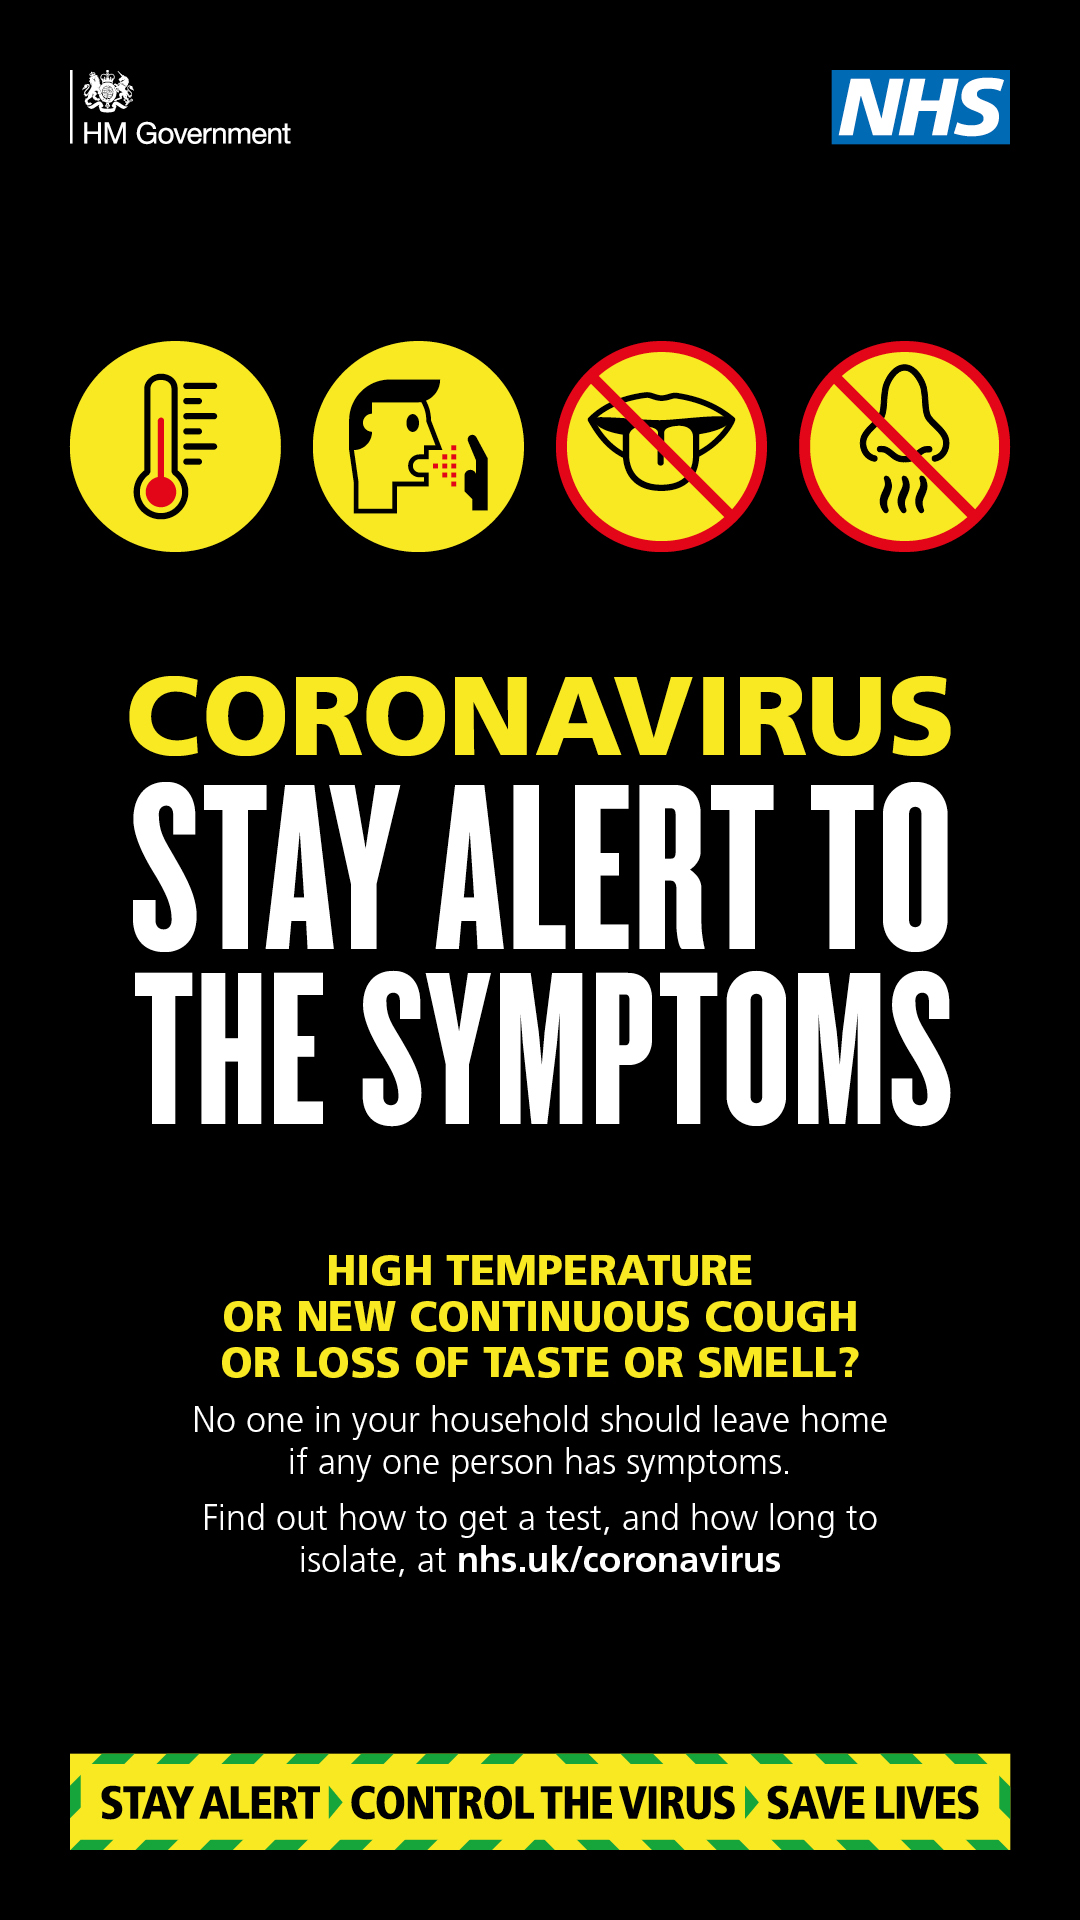 Coronavirus Updated Symptoms, High Temperature, New Continuous Cough or Loss of Taste or Smell